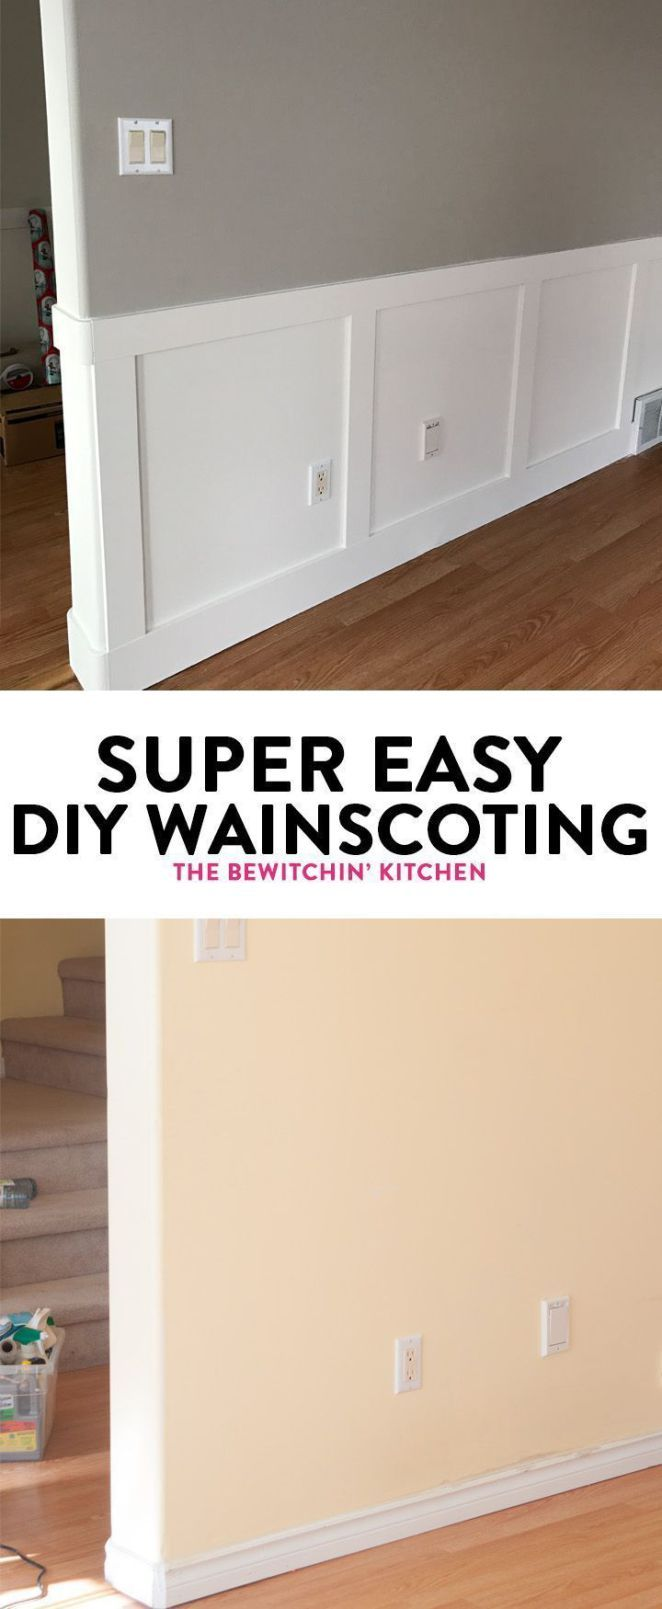 Salle à manger  DIY Wainscoting renovation. I didn't think installing wainscotting would be